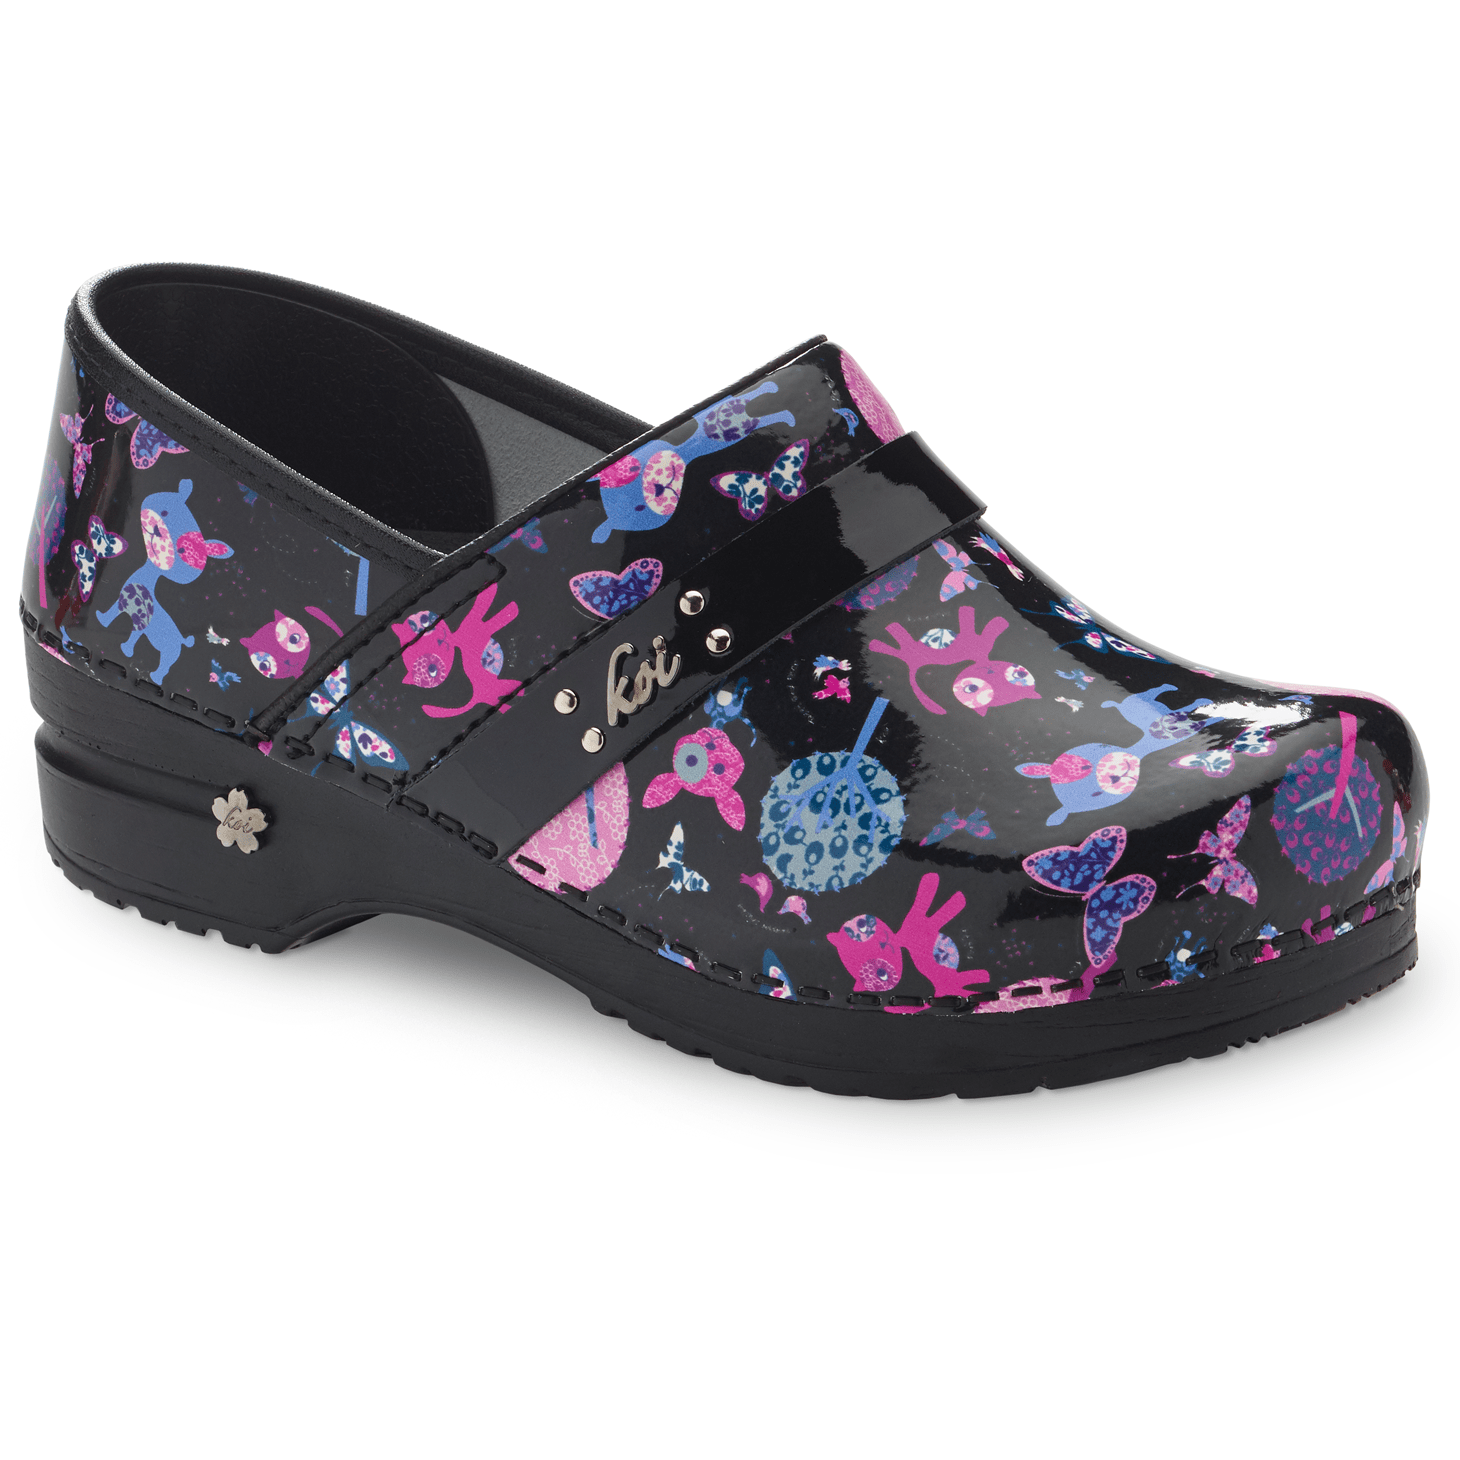 Sanita Koi Pet Zoo Women's Closed Back Clog